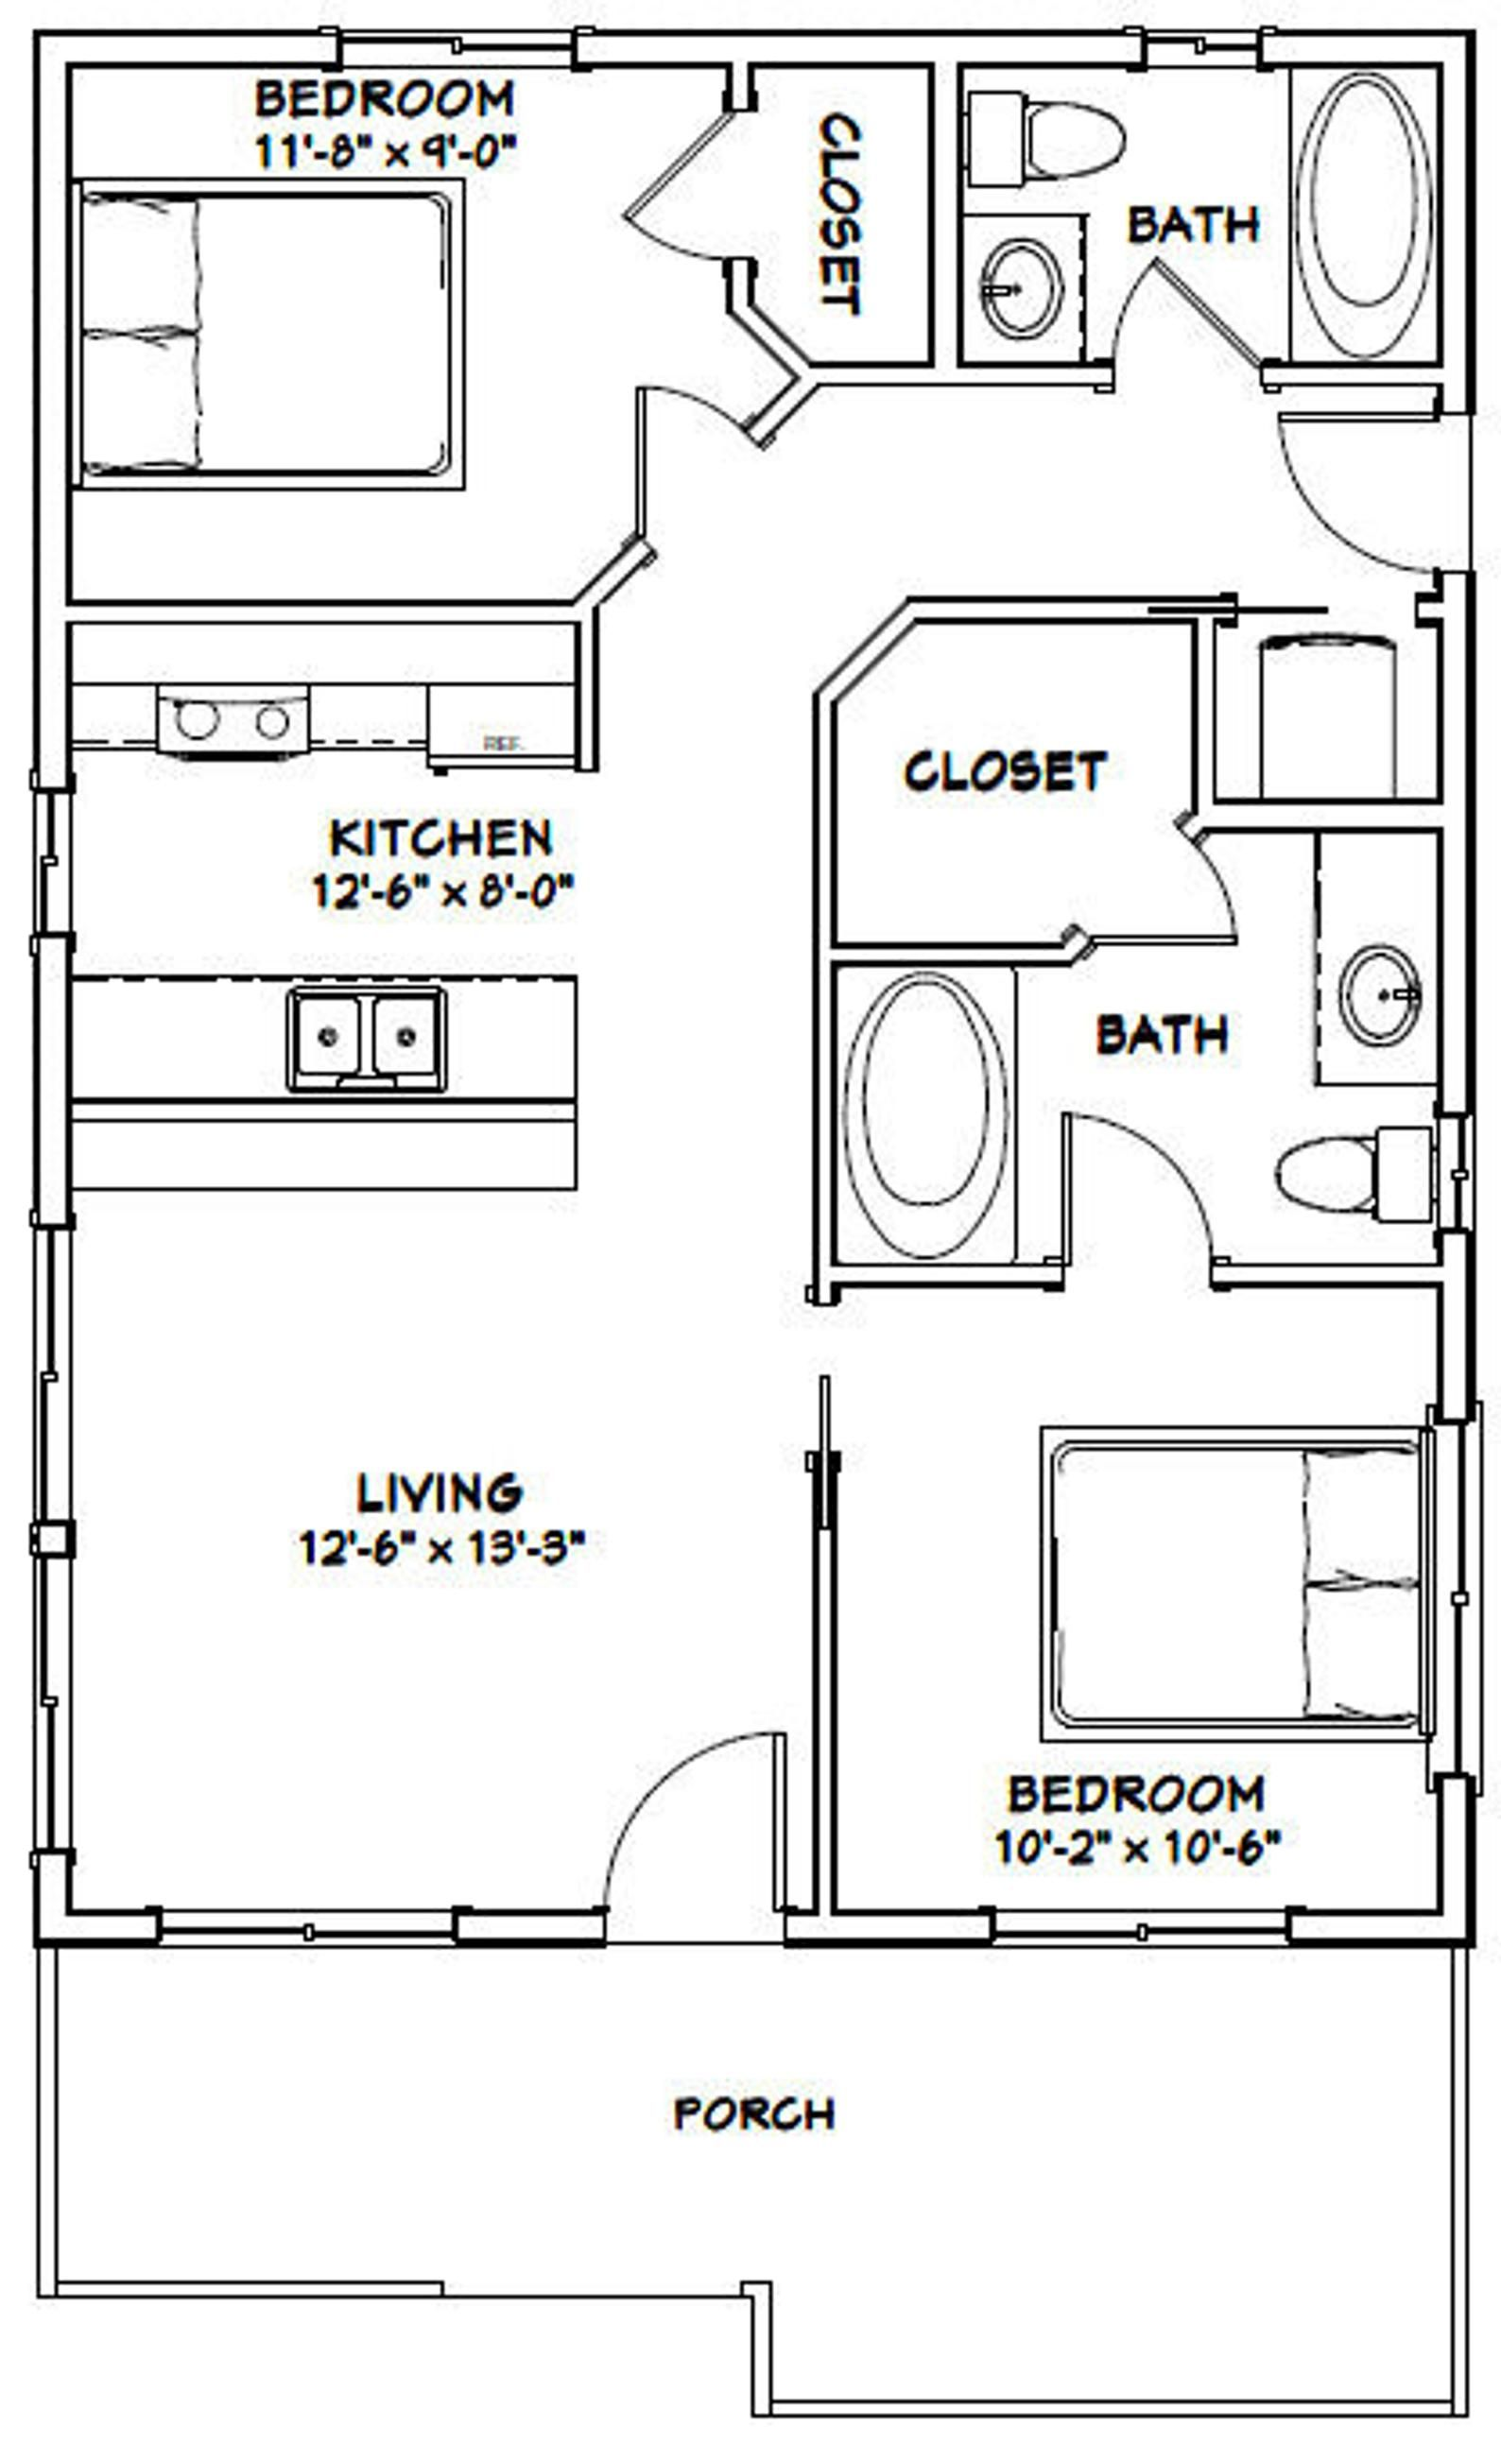 24x32 House 2 Bedroom 1 Bath 768 Sq Ft Pdf Floor Plan Instant Download Model 1c Small House Floor Plans House Floor Plans House Plans